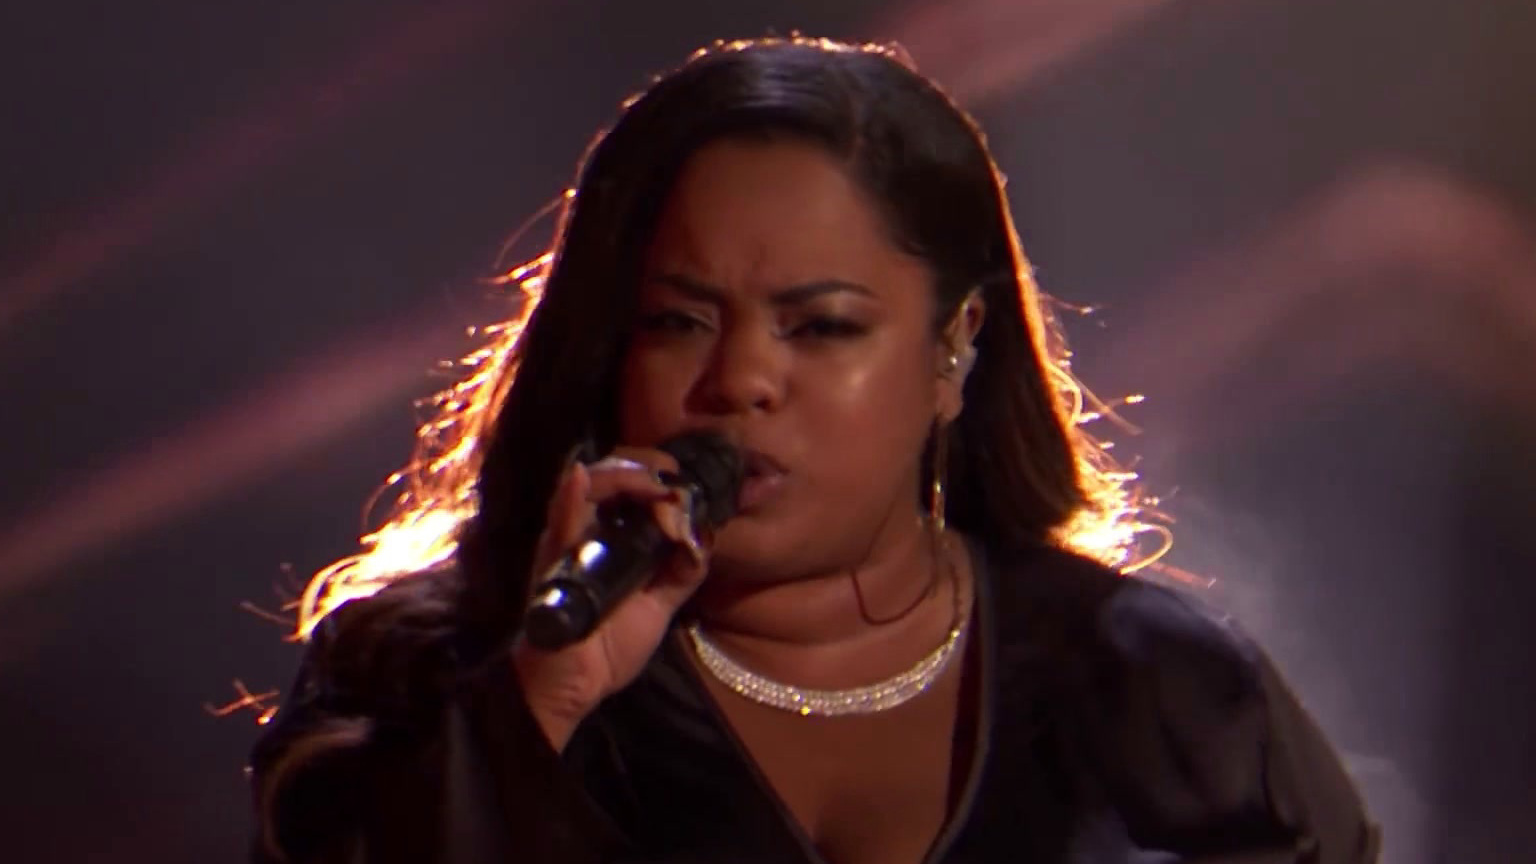 America's Got Talent: Shaquira Mcgrath Sings What Hurts The Most By Rascal Flatts